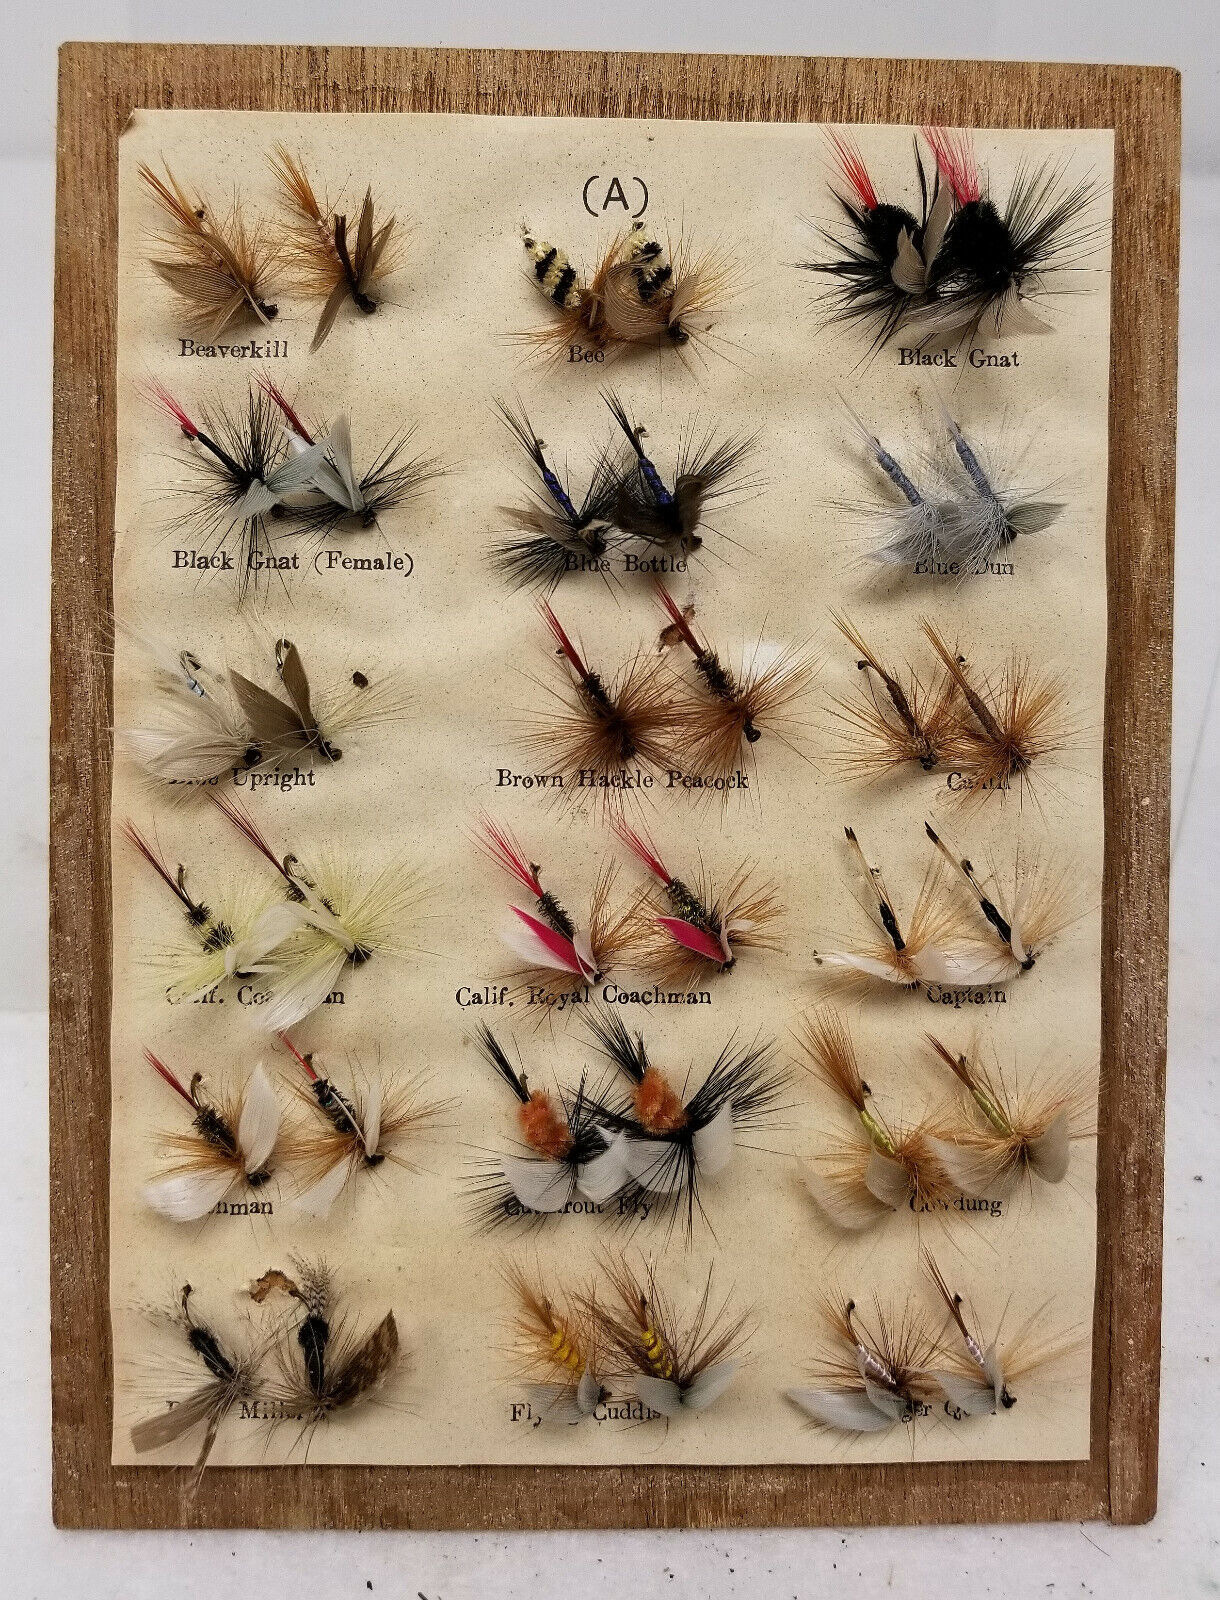 Antique Vintage Display of Fly Fishing Flies Lures Insects Collection